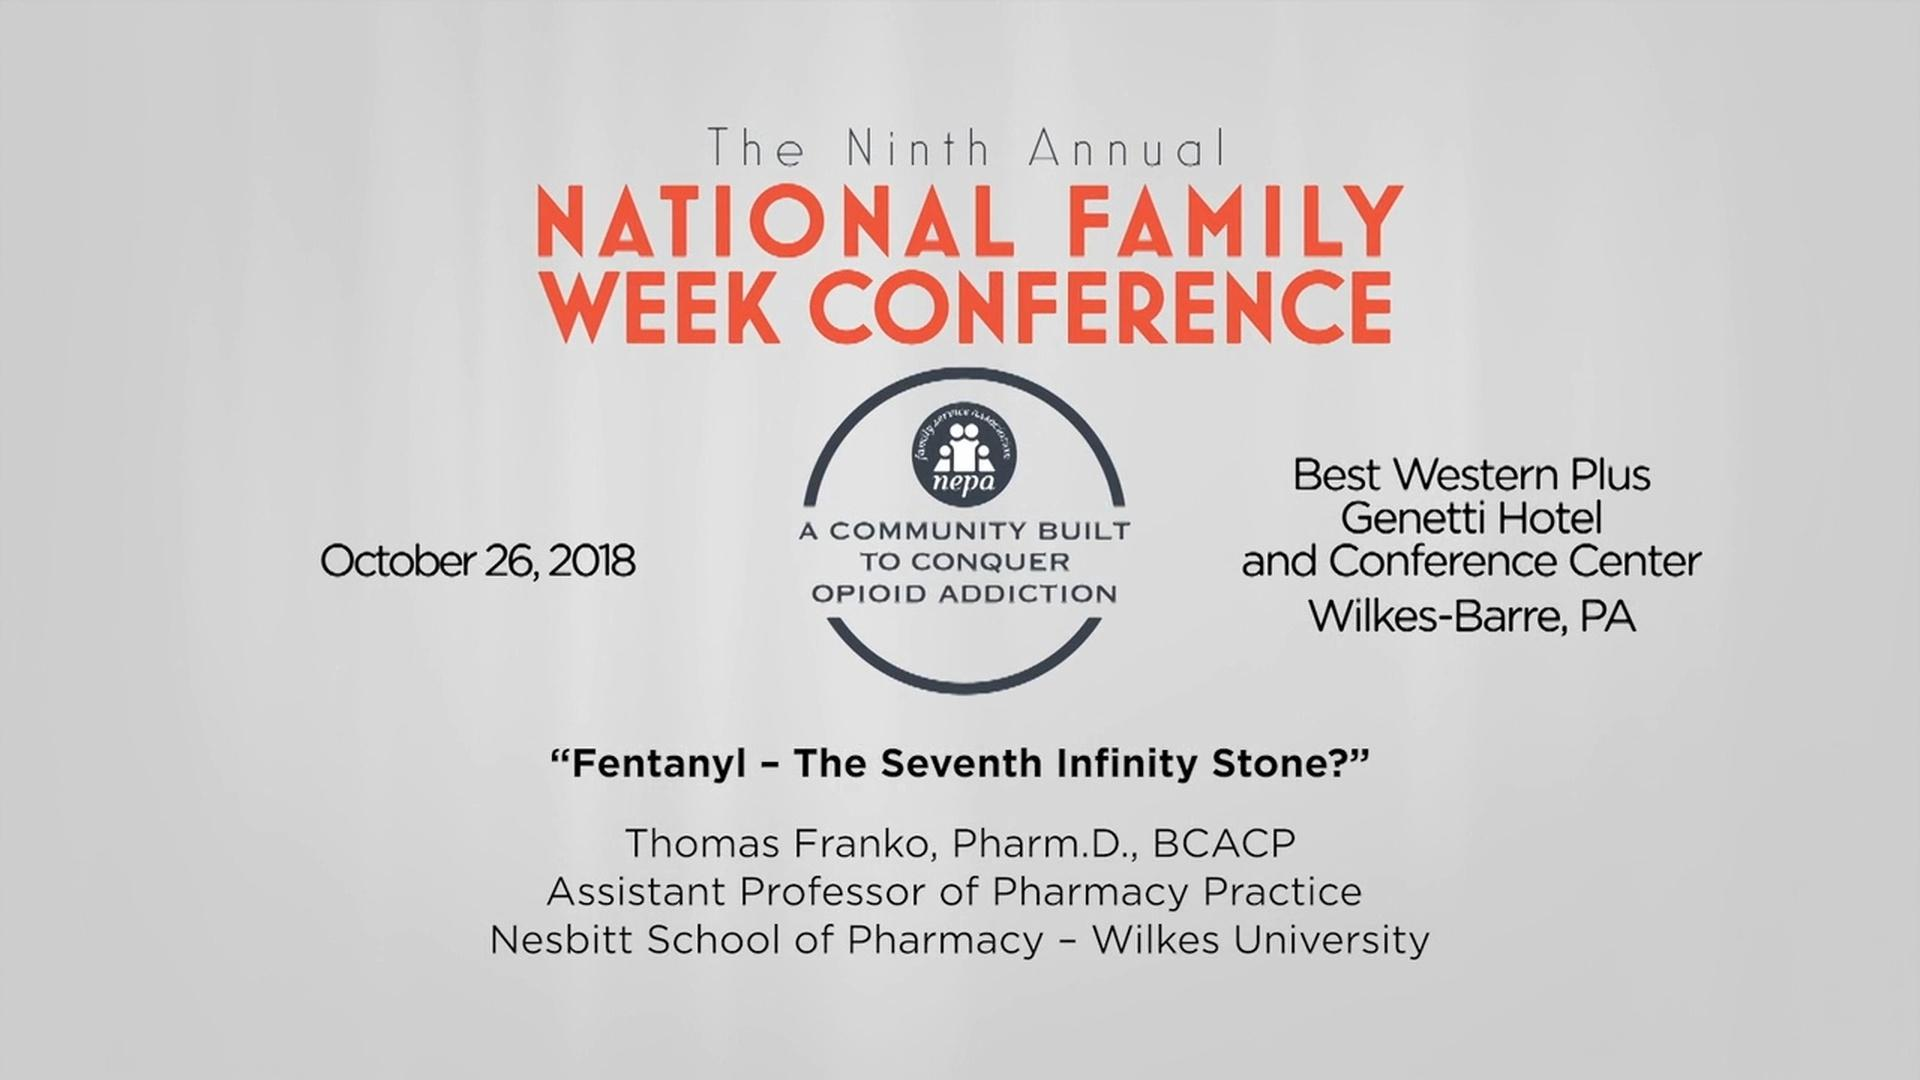 S2018 E17 Fsa National Family Week 2018 Thomas Franko Wvia